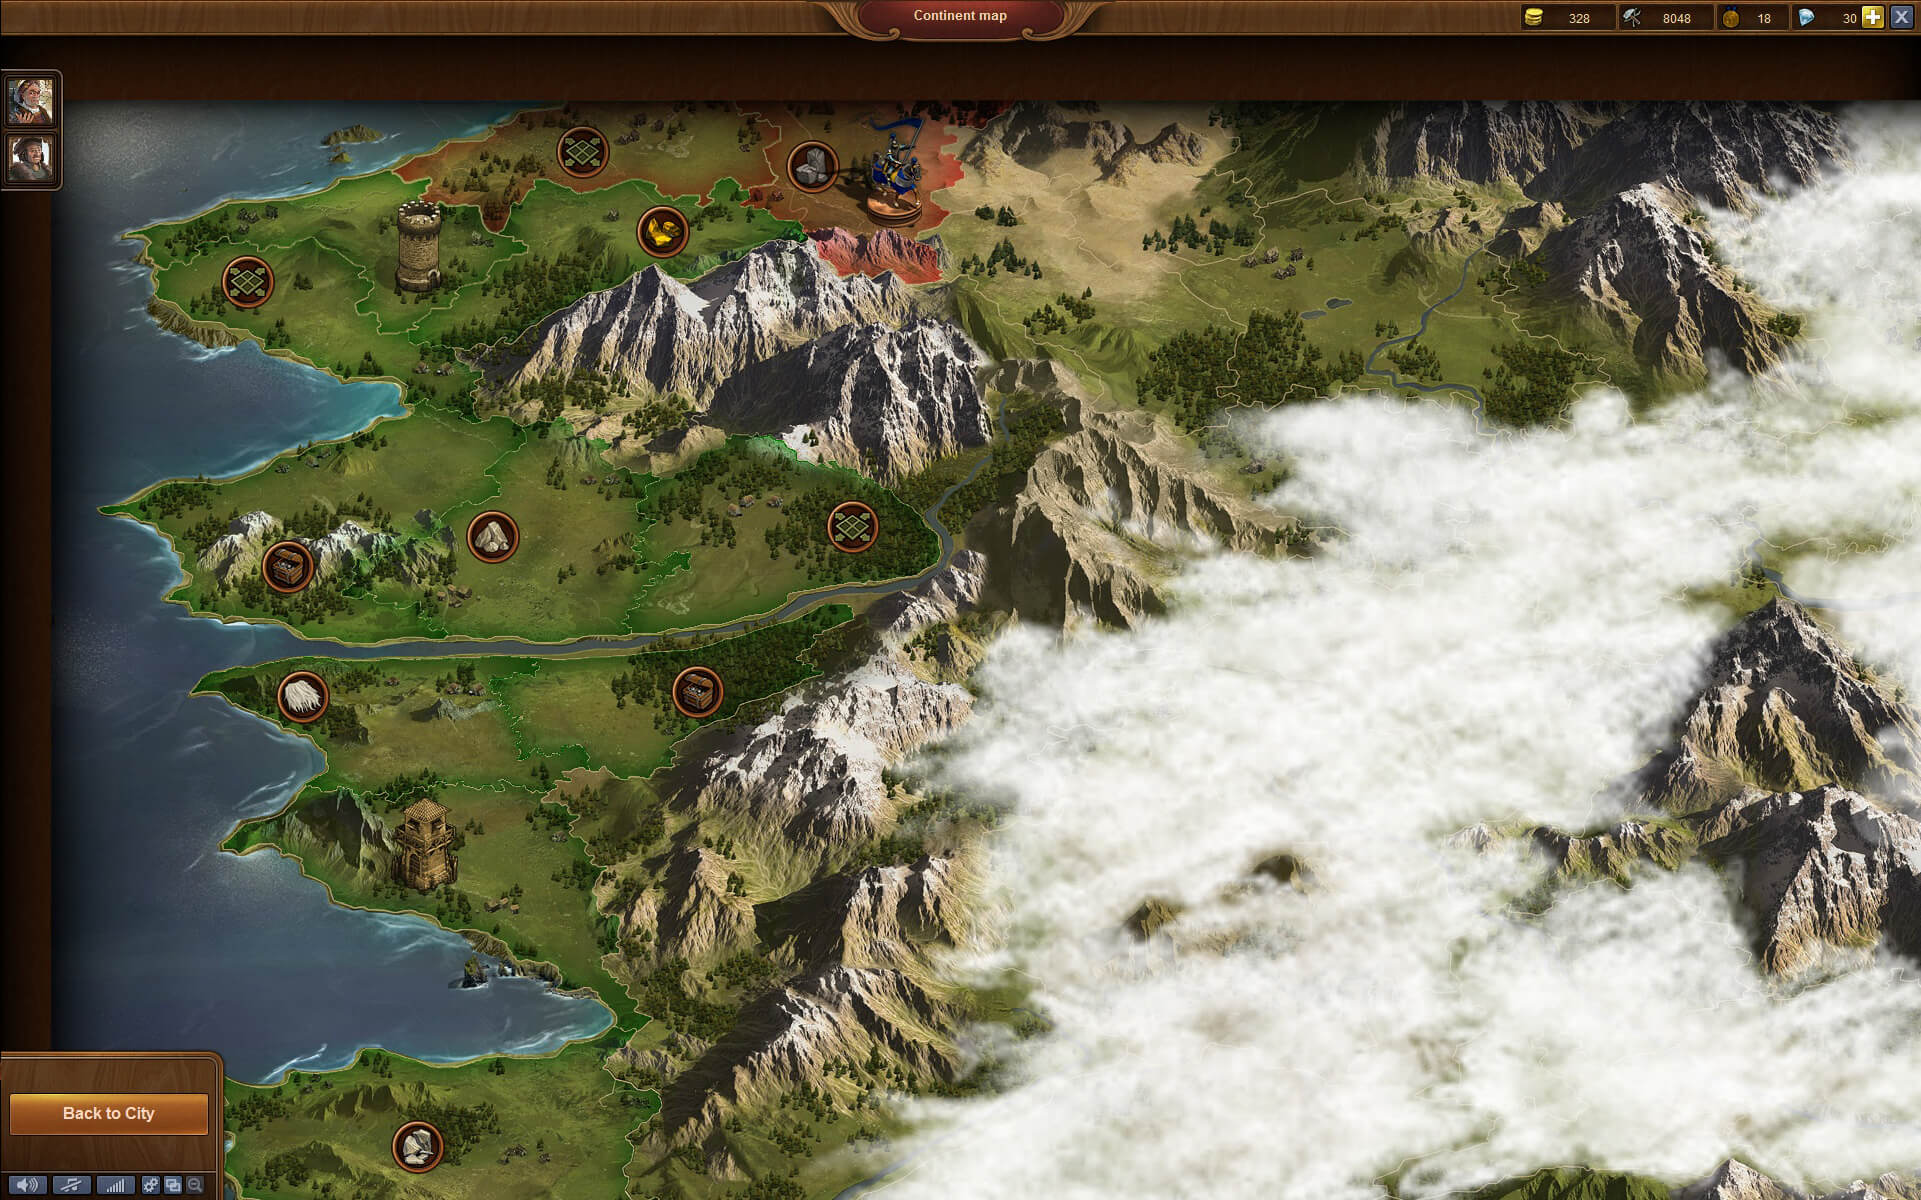 Forge of Empires Comes to Kindle Fire Devices   Cosmocover